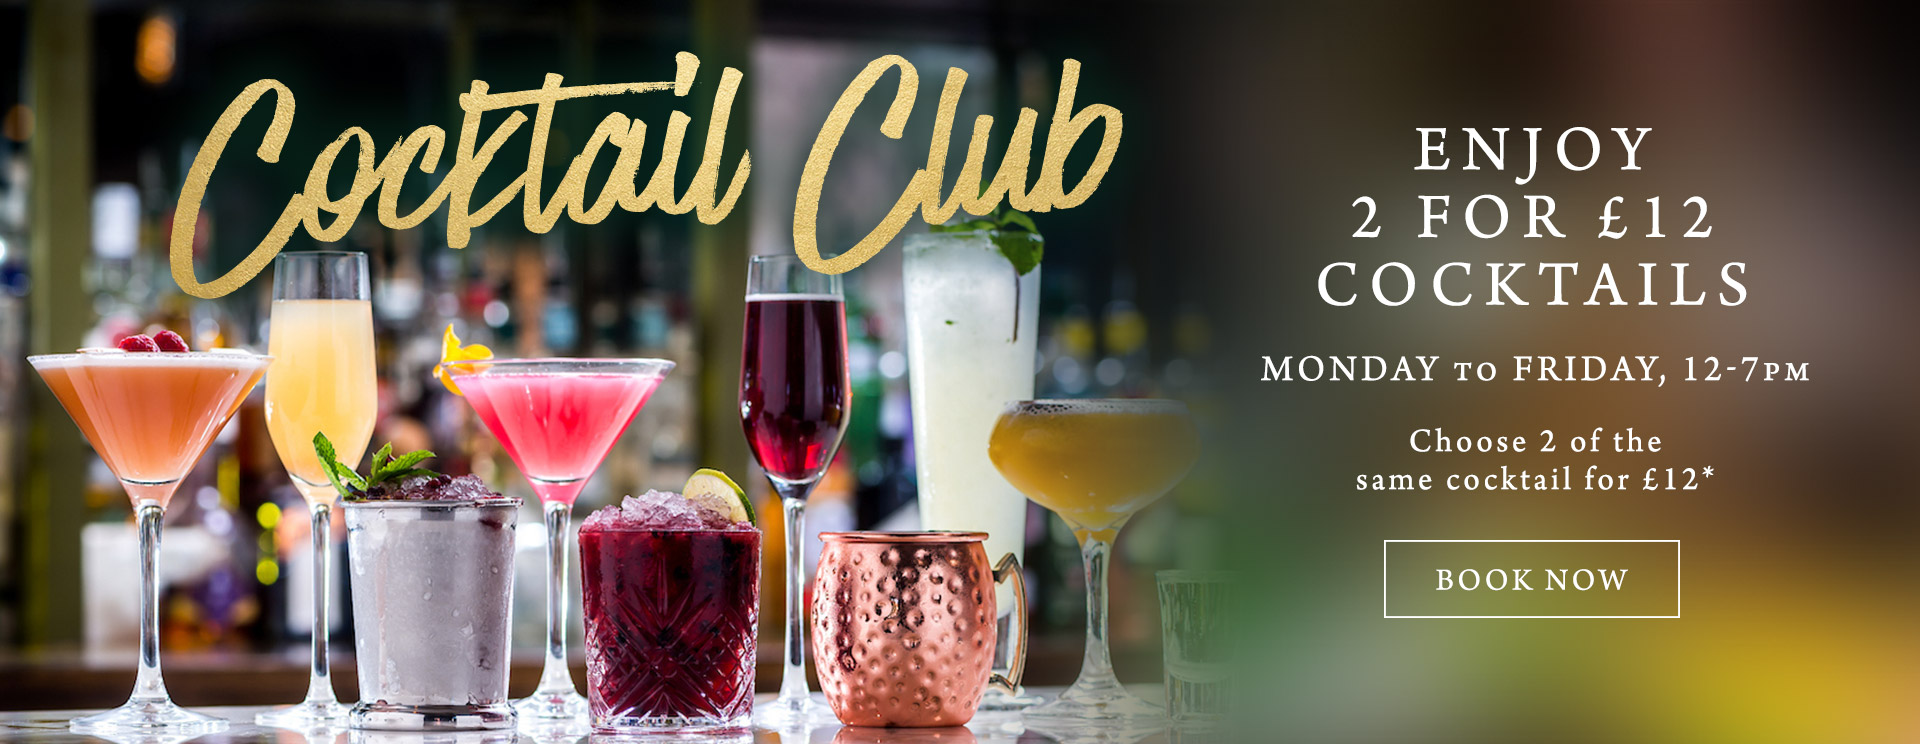 2 for £12 cocktails at The Cromwell Cottage